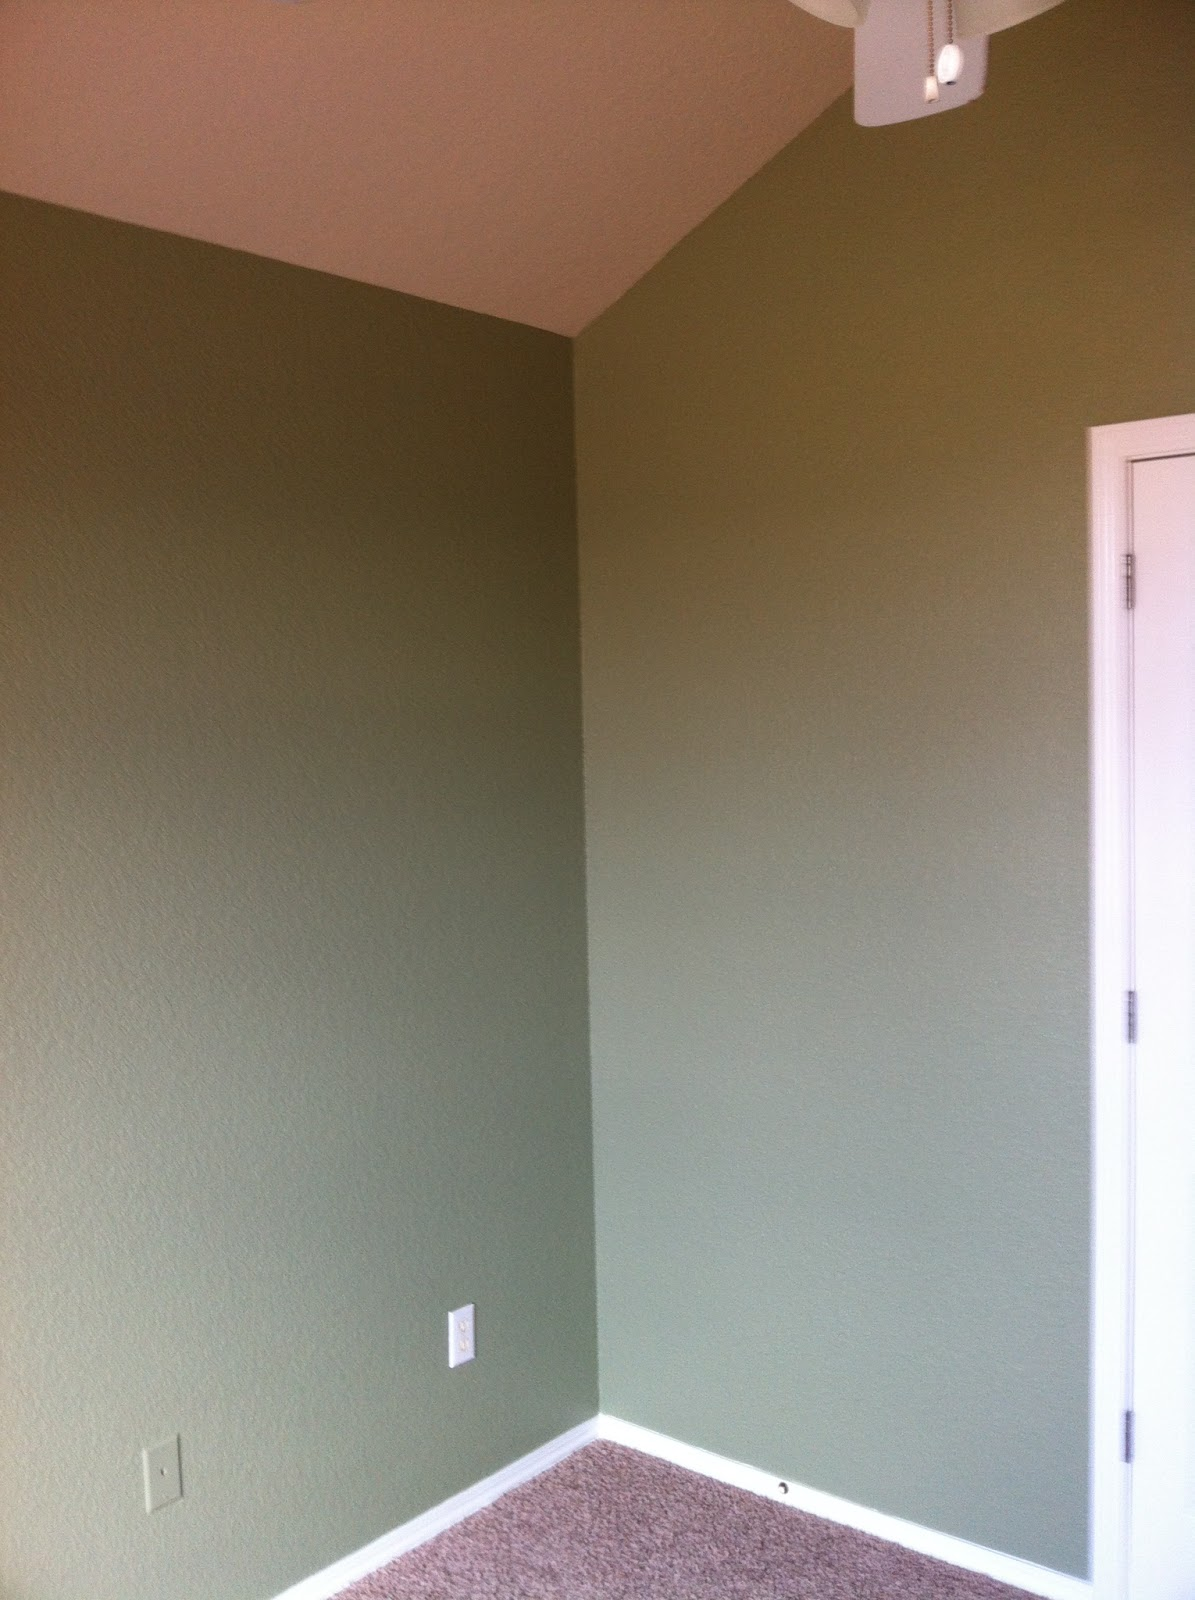 Lasun 39 s painting home interior painting sage green bedroom for Sage green interior paint